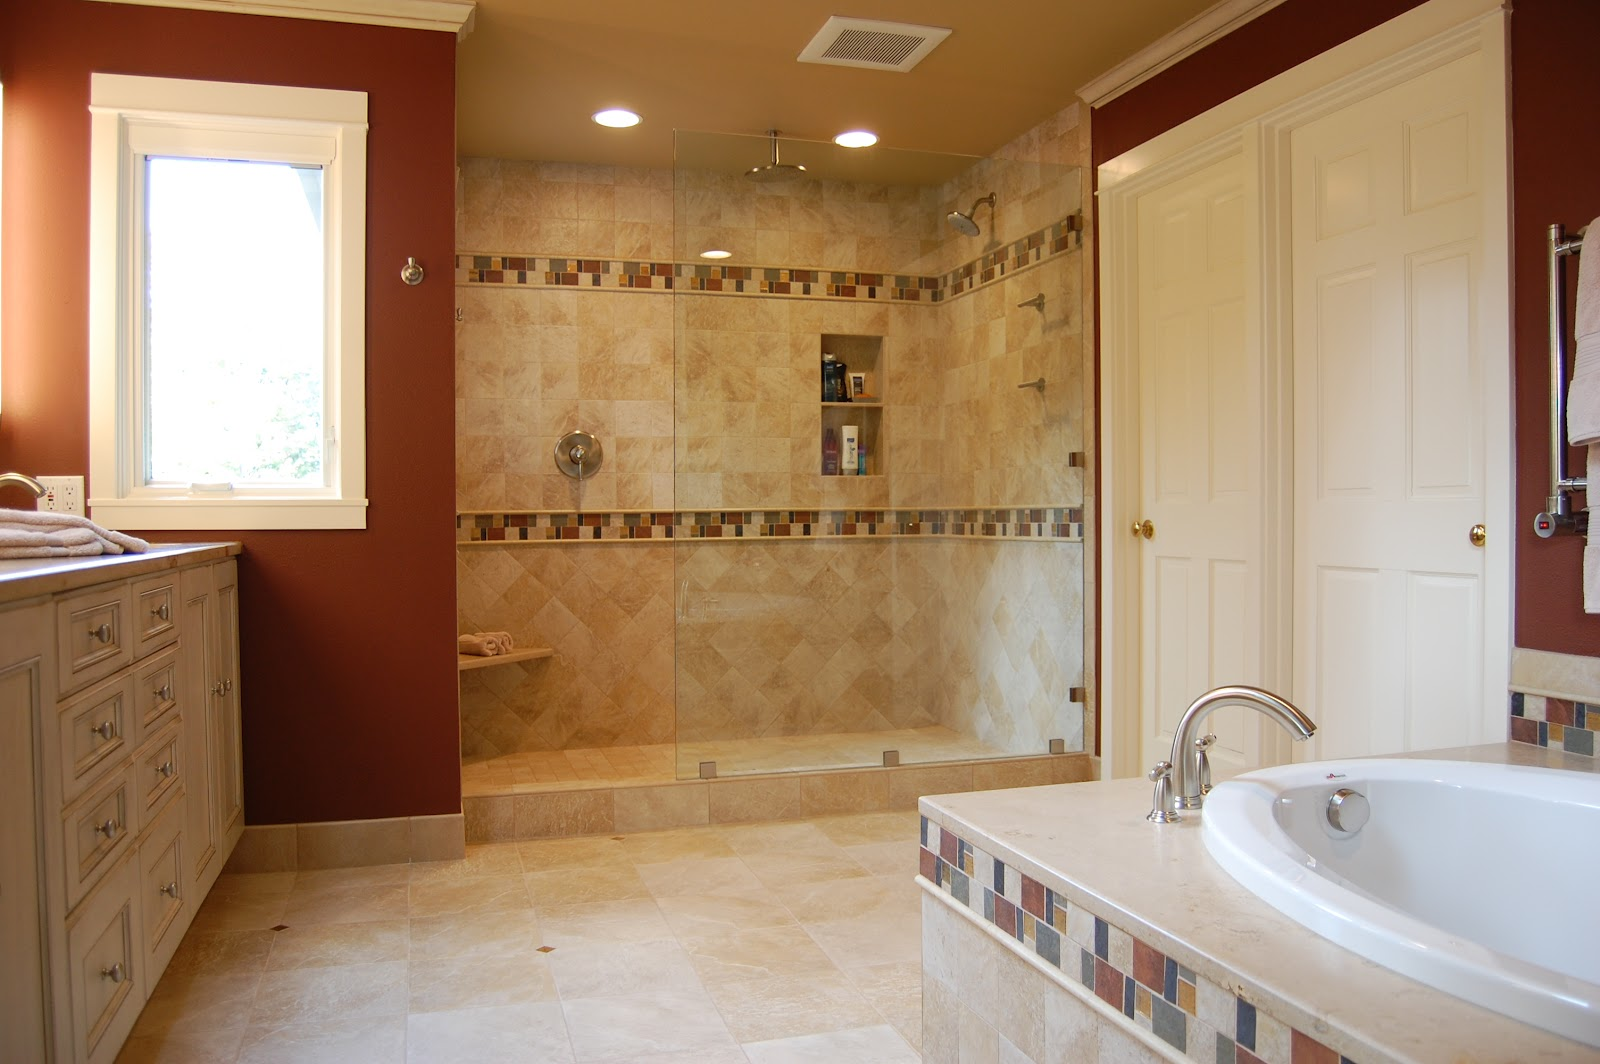 Here are some of the best bathroom remodel ideas you can - Pictures of remodeled small bathrooms ...